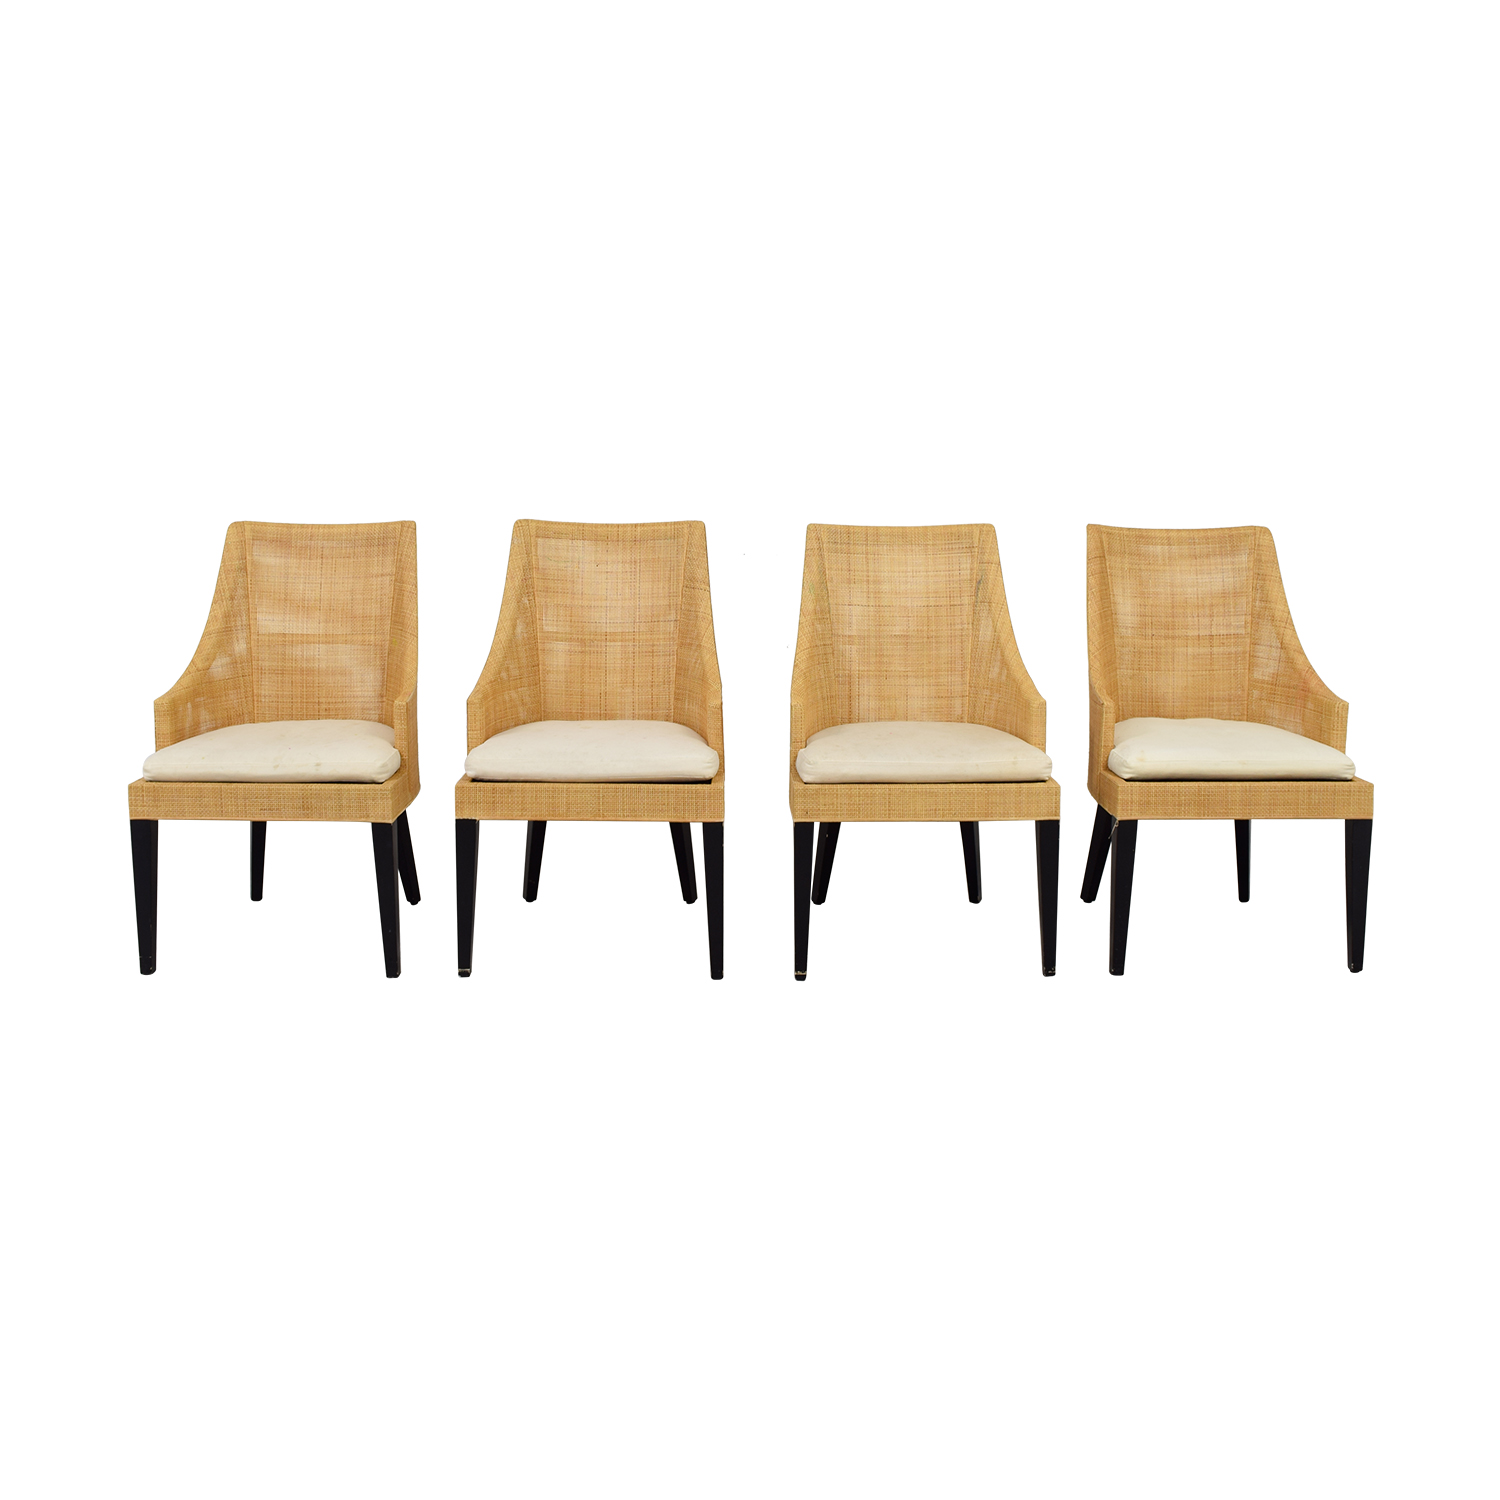 West Elm West Elm Dining Chairs nyc